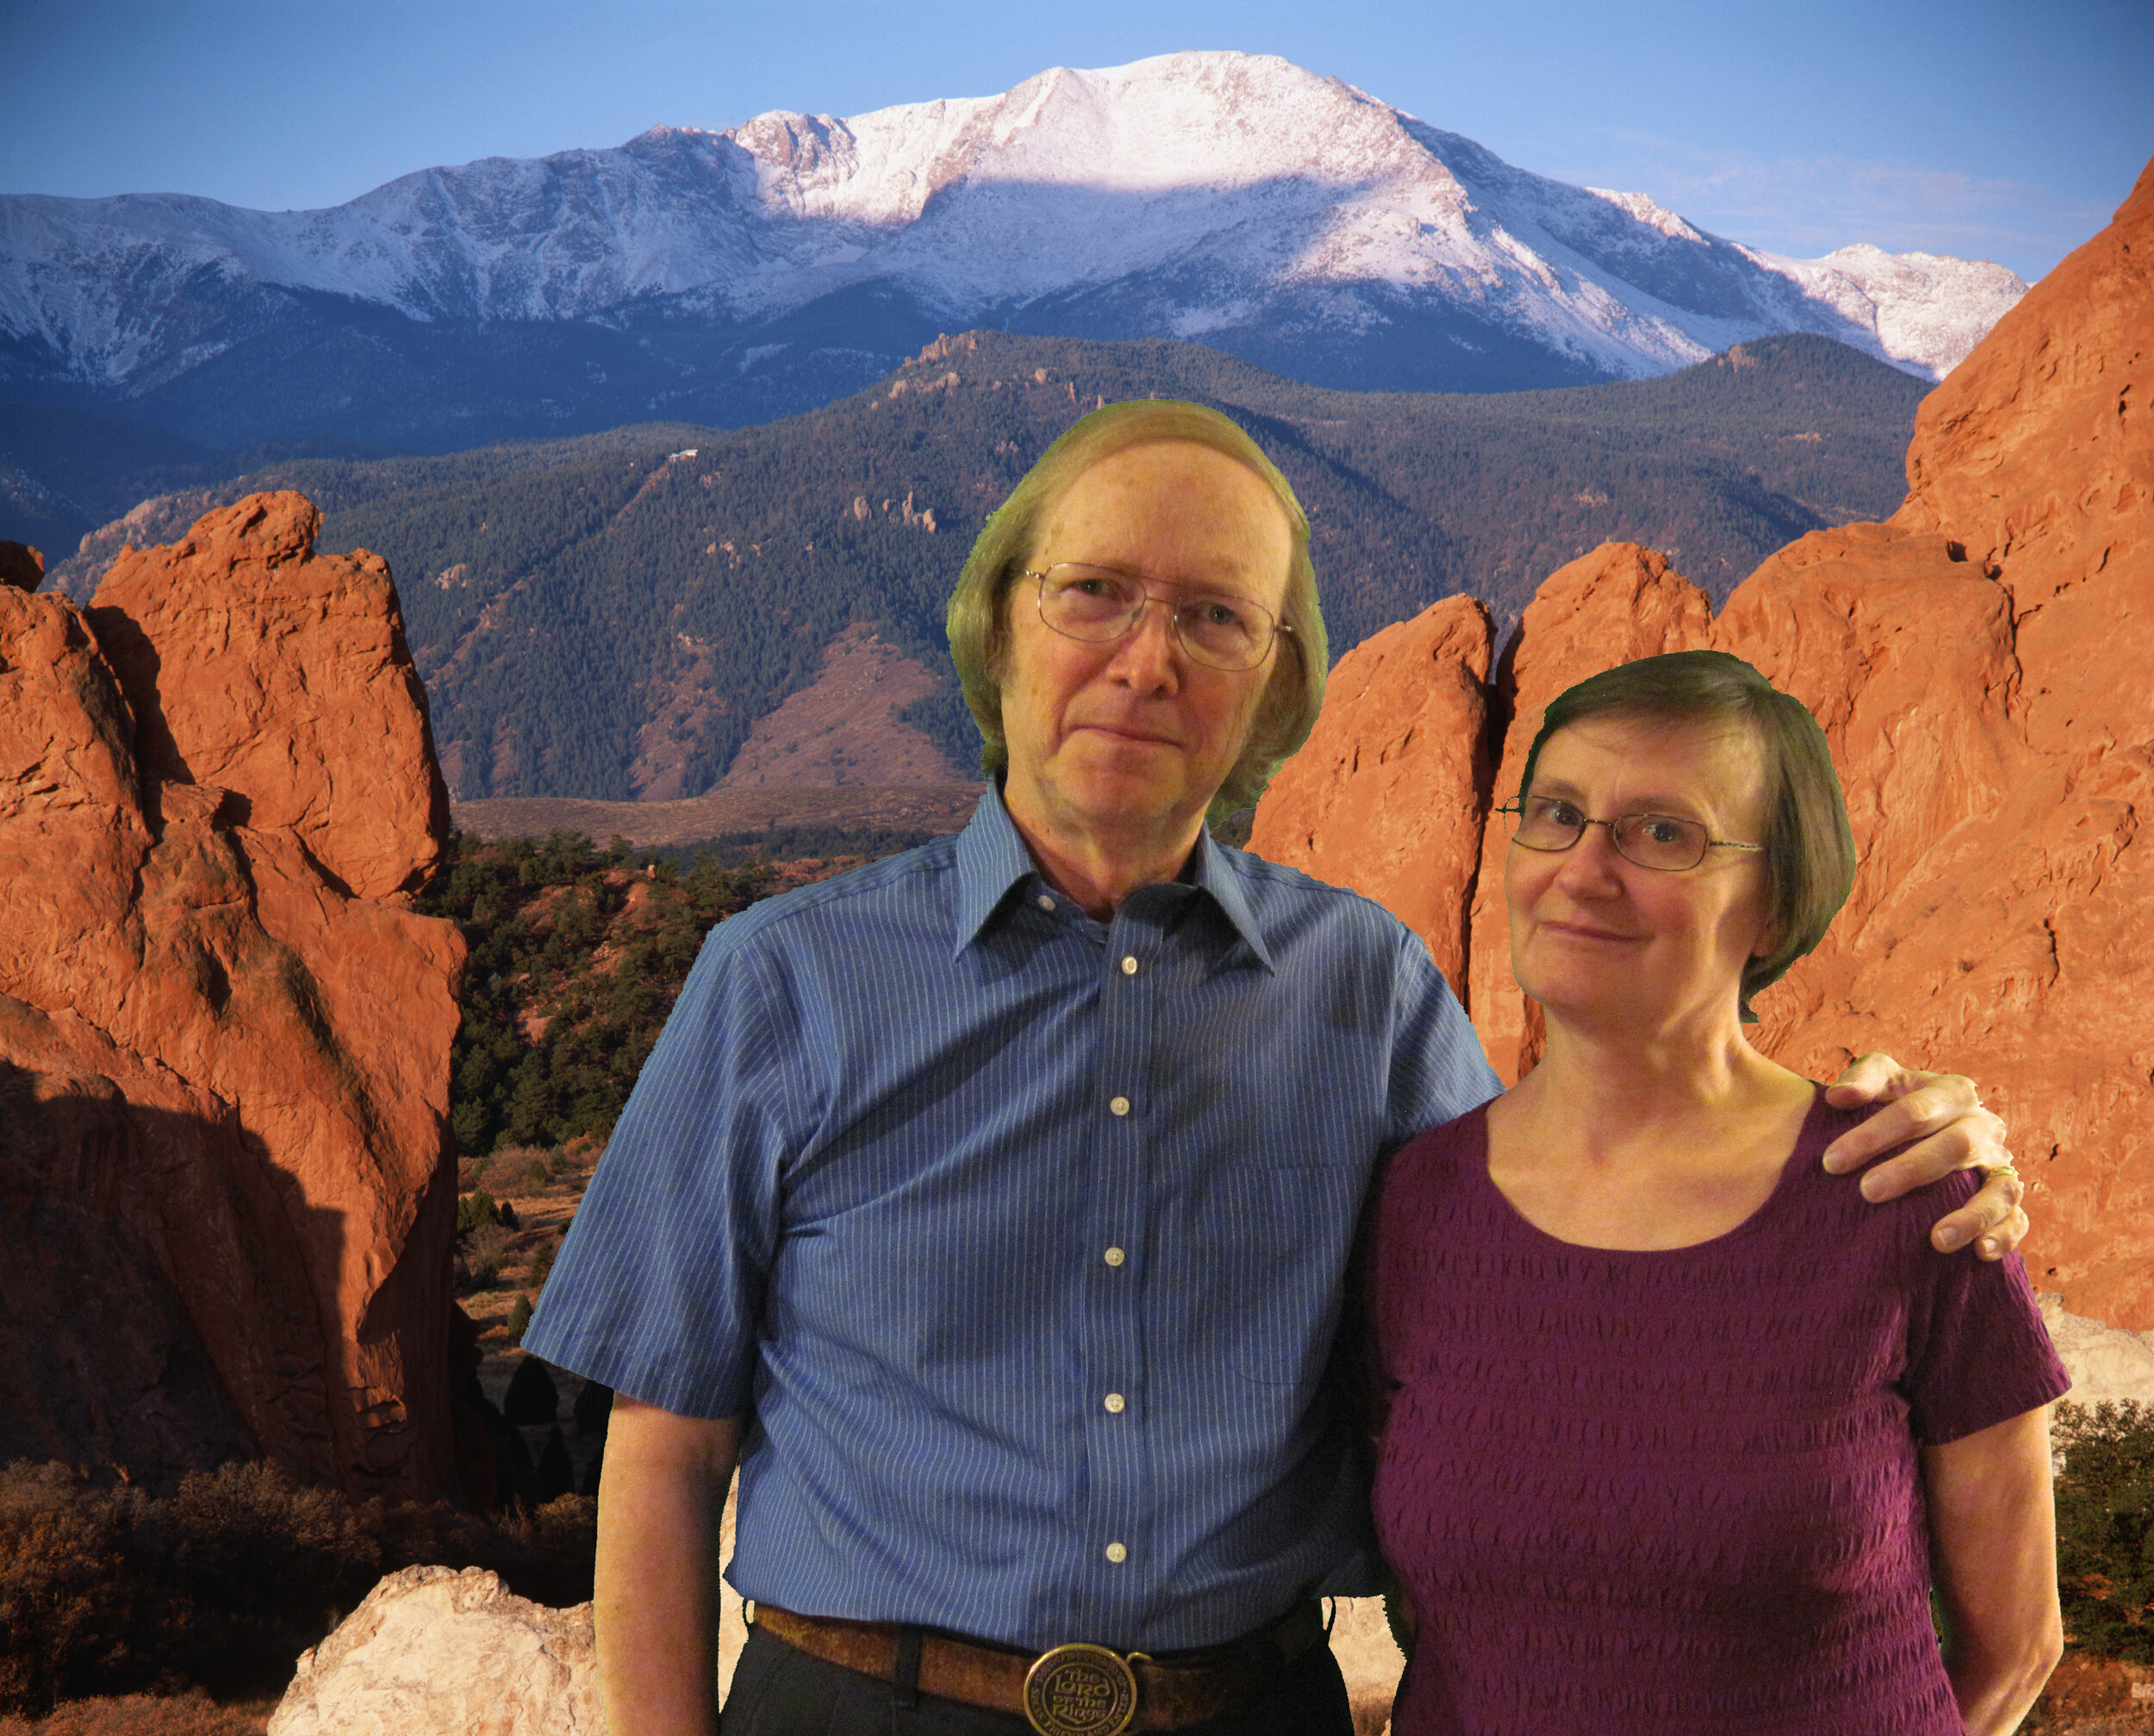 Chris and Terri Chapman    Mission Organization:  Greater Europe Mission (seconded to SIL International)   Location:  Based in Colorado but serve globally   What you do:  We work with Deaf communities around the world to support them in reaching their language development goals. Those goals include linguistic research, language recognition, Deaf education, Bible translation, and Scripture Engagement. We help lead a global team of people who come alongside Deaf communities in these efforts.